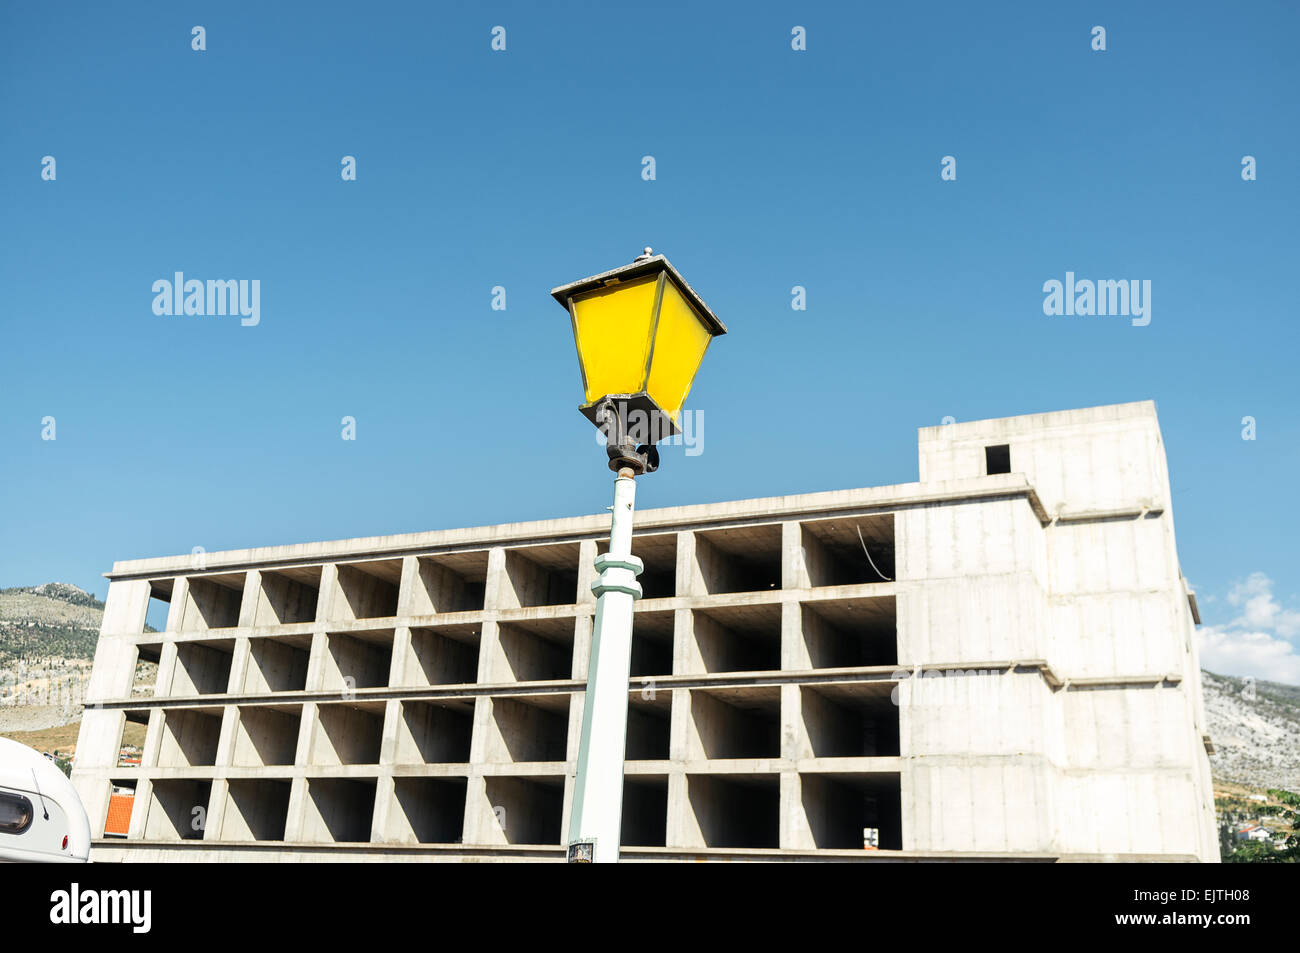 Low angle view of street light against incomplete building - Stock Image